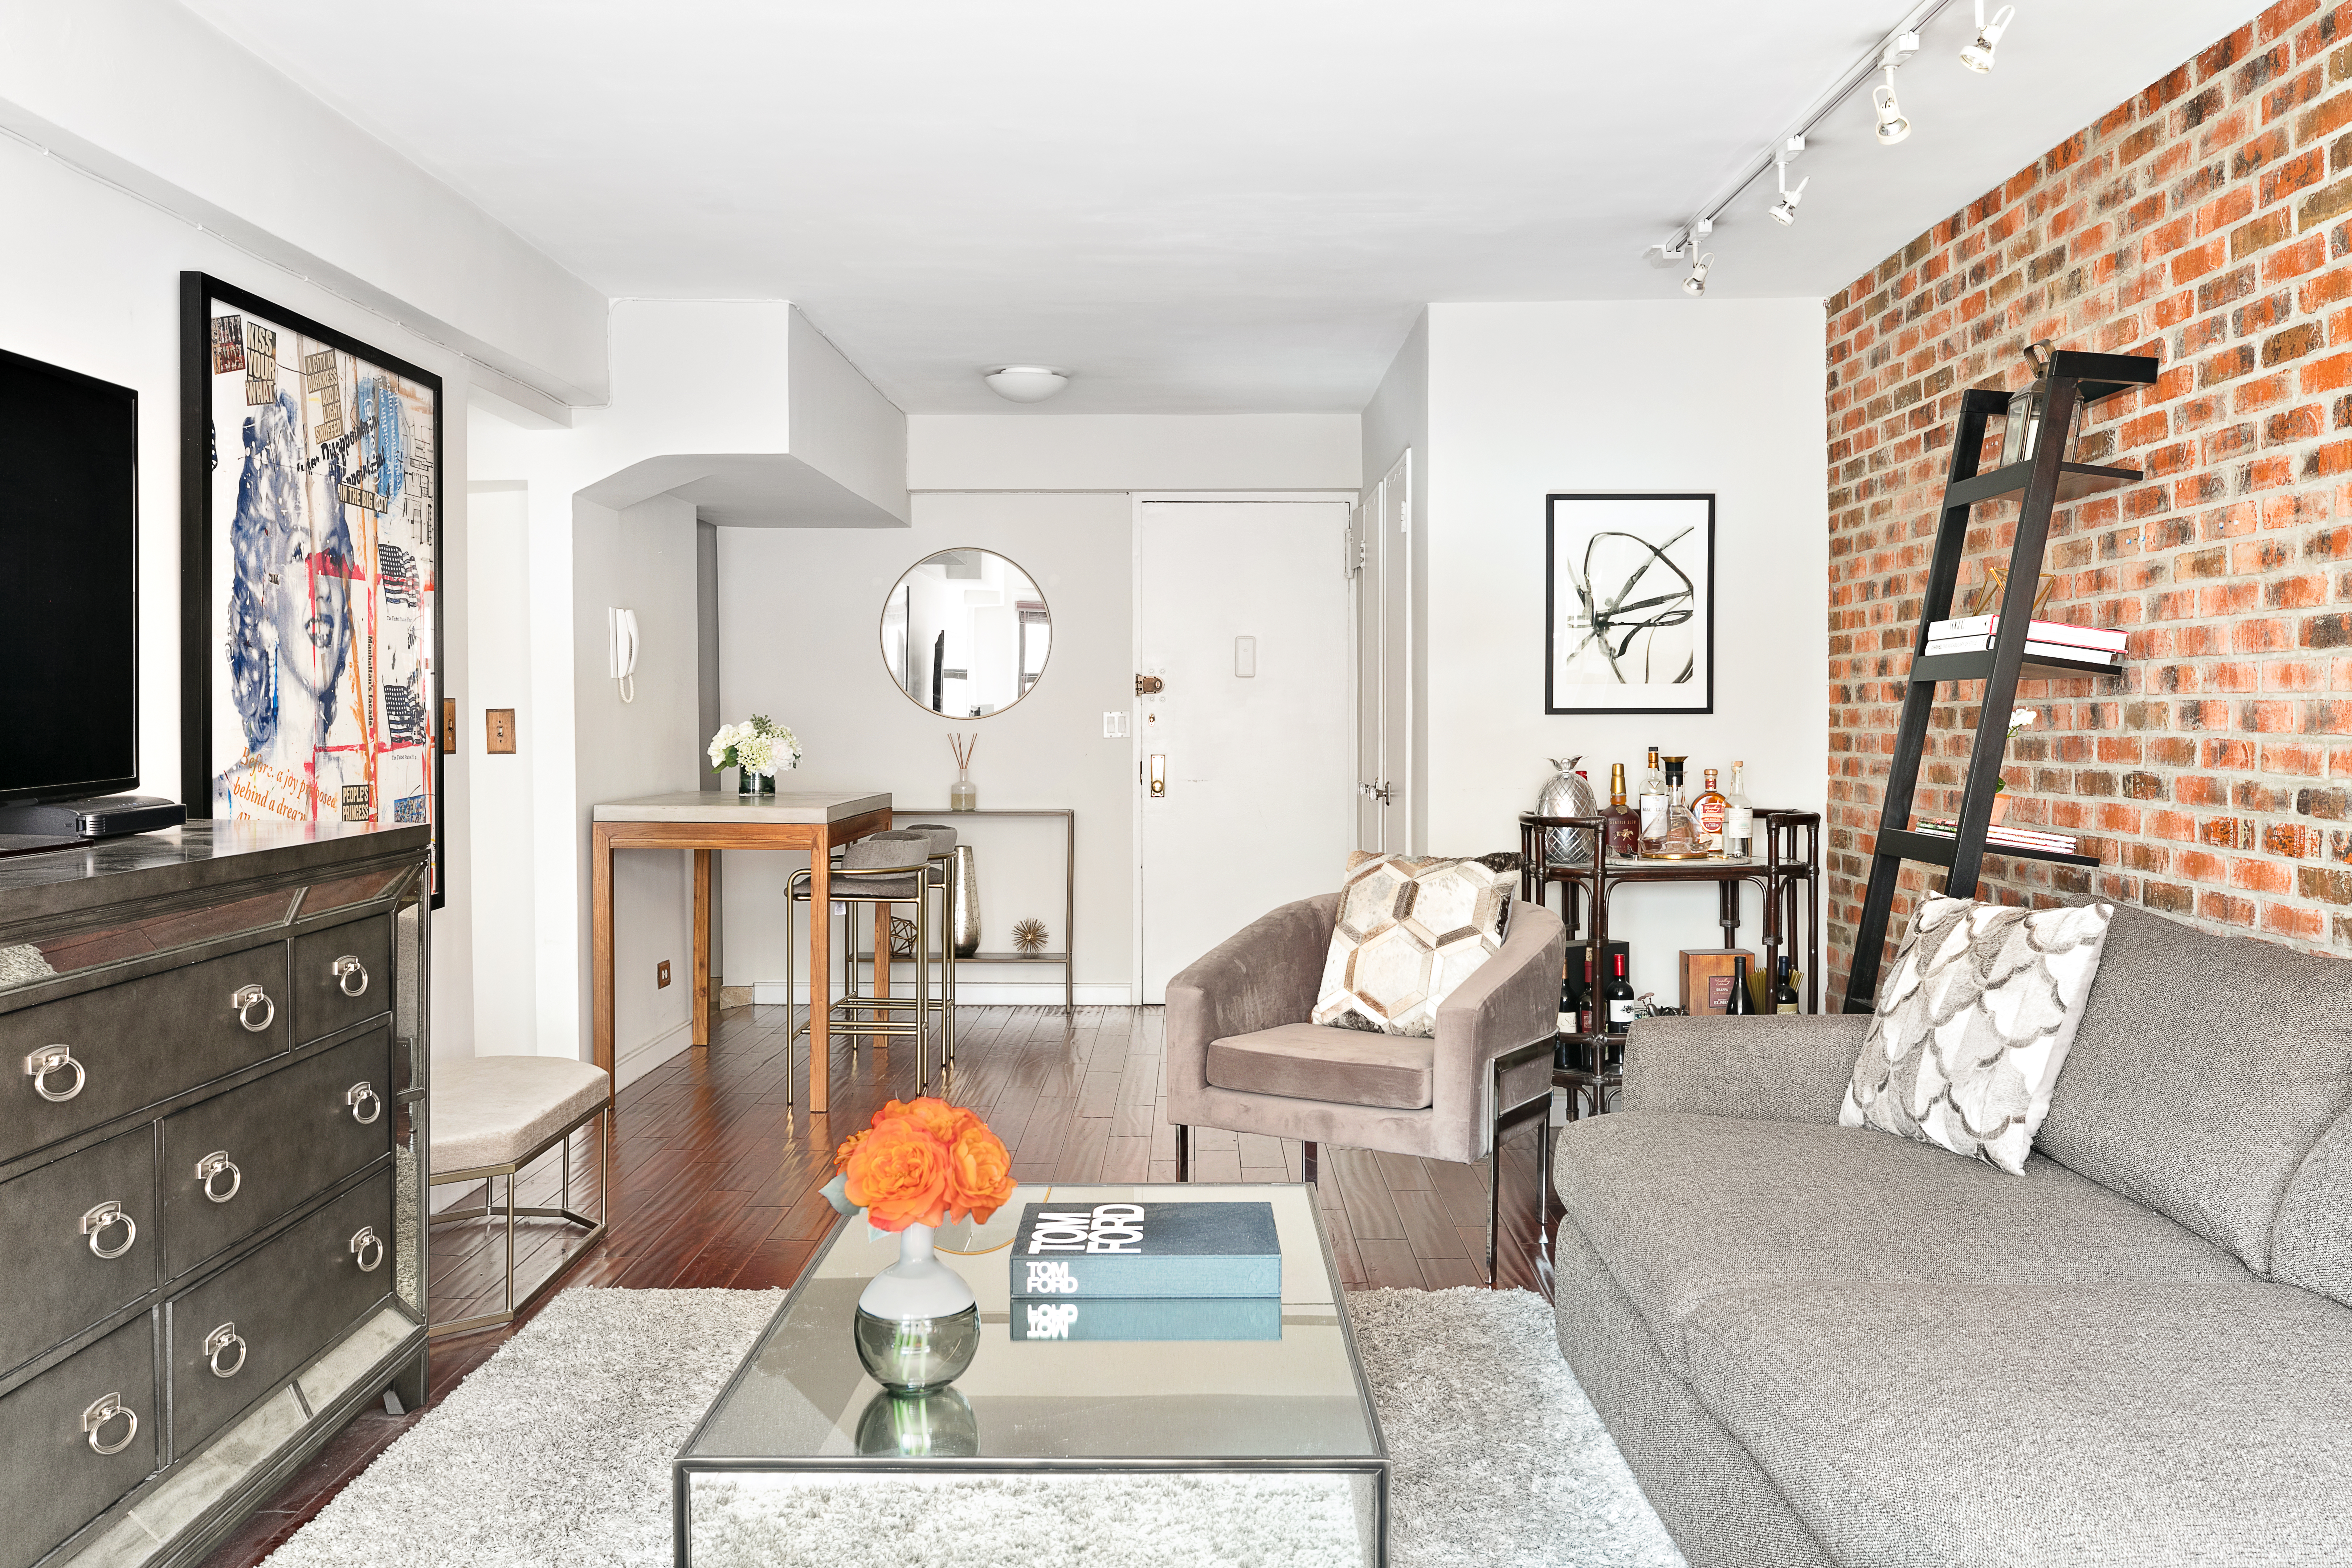 A living with a grey couch, a grey rug, a coffee table, and exposed brick.